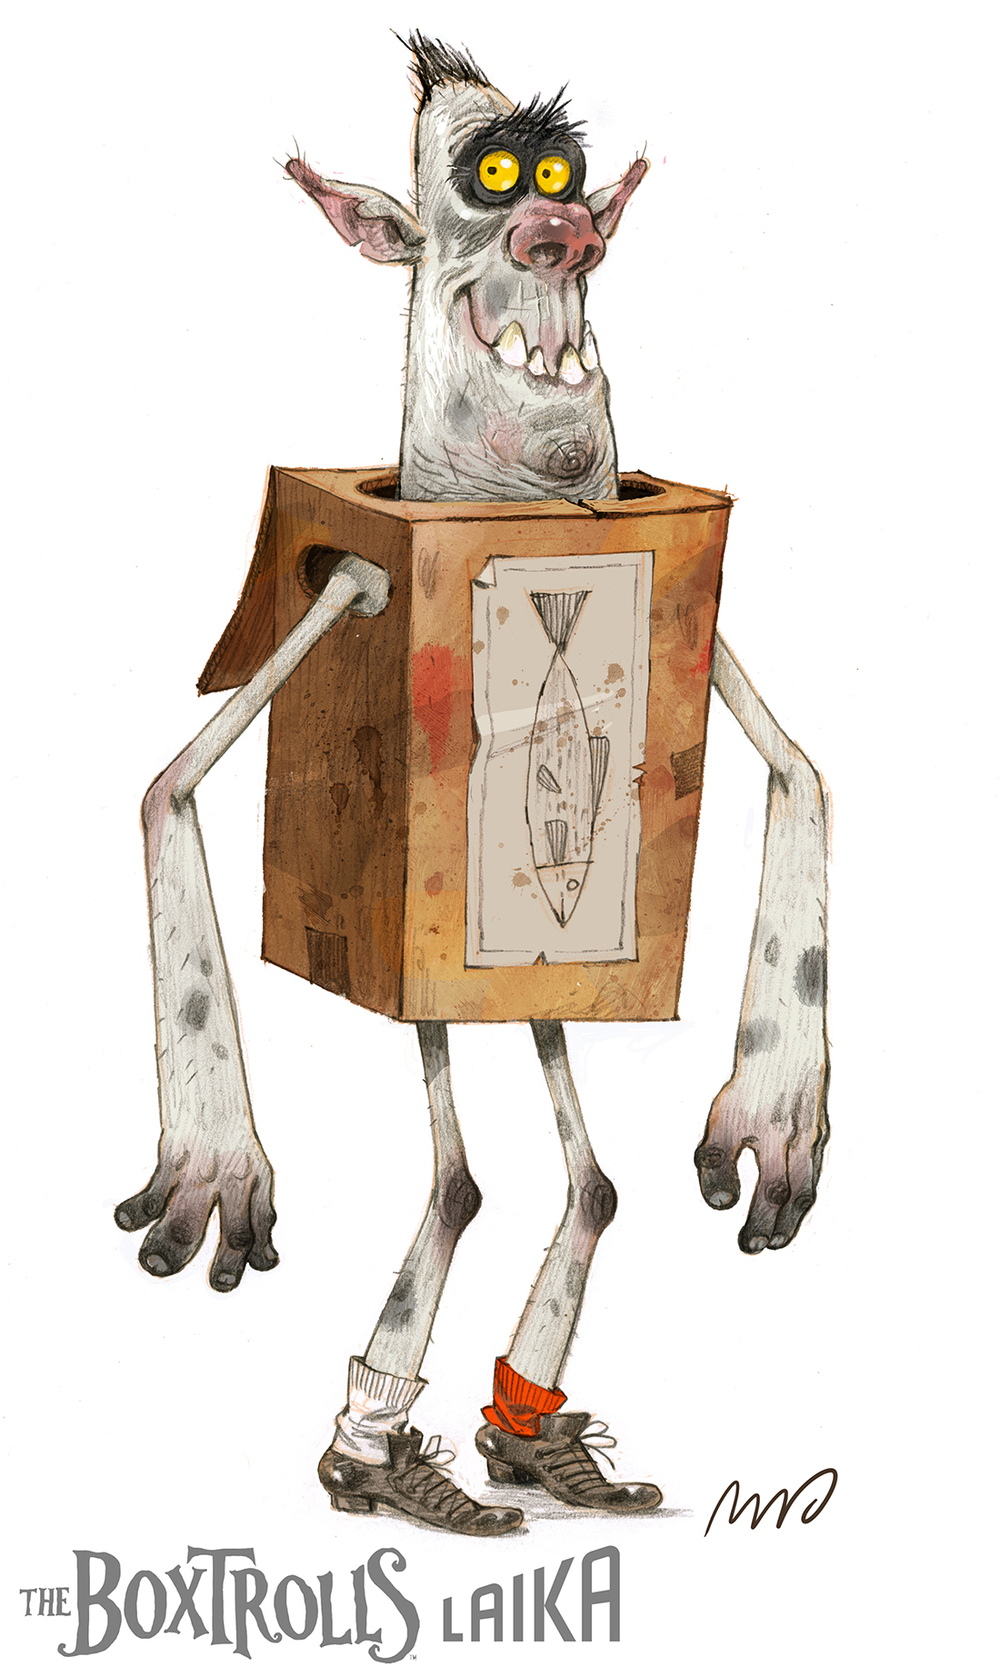 smarc-Boxtrolls-Fish10b color.jpg